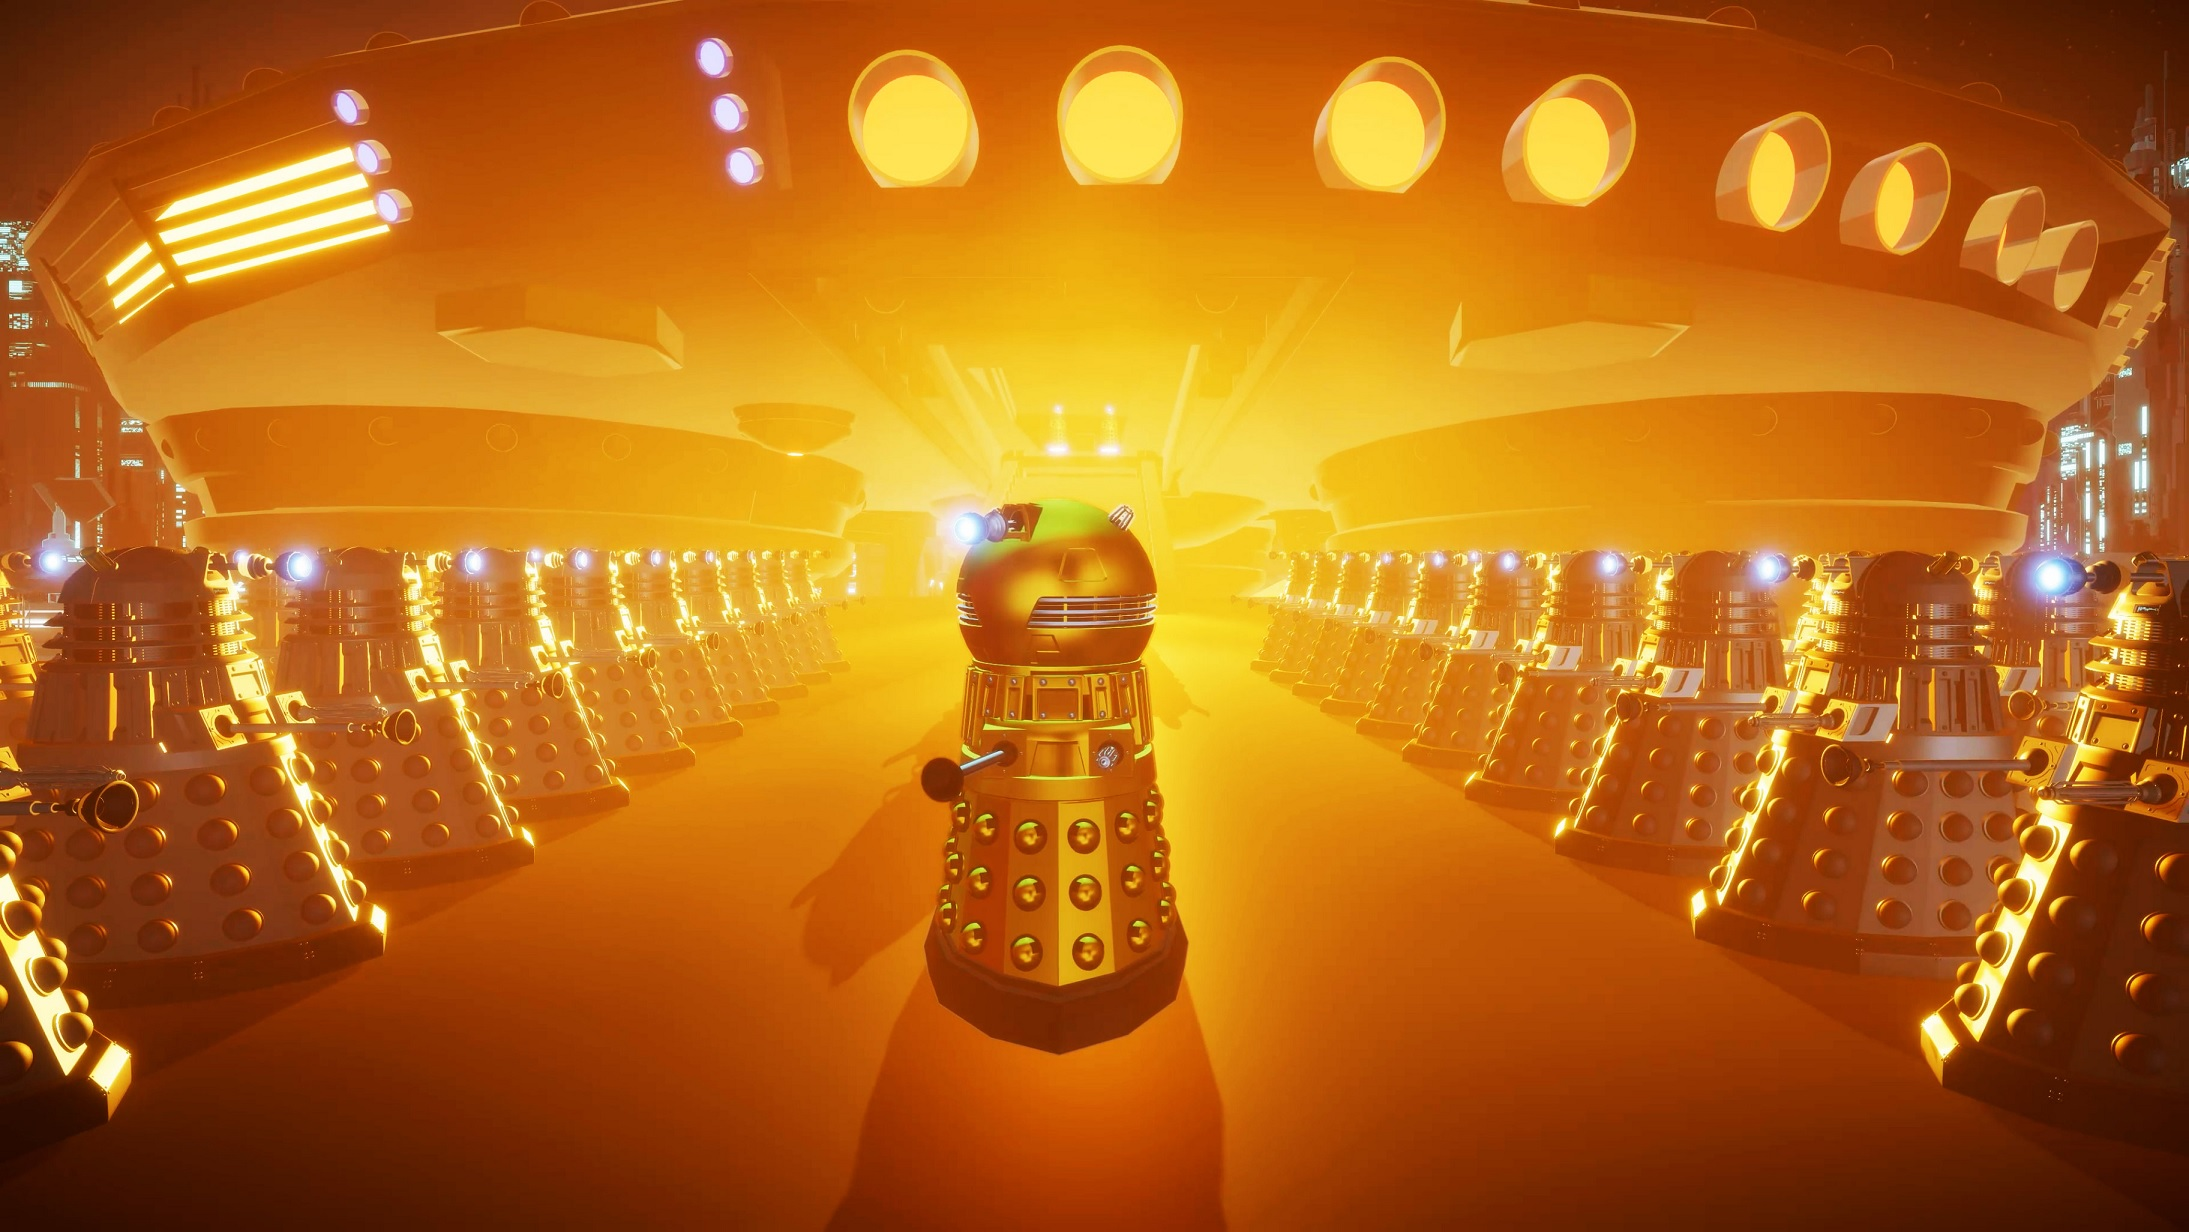 Watch Daleks: The Sentinel of the Fifth Galaxy, An Animated Doctor Who Spin-Off, Here!